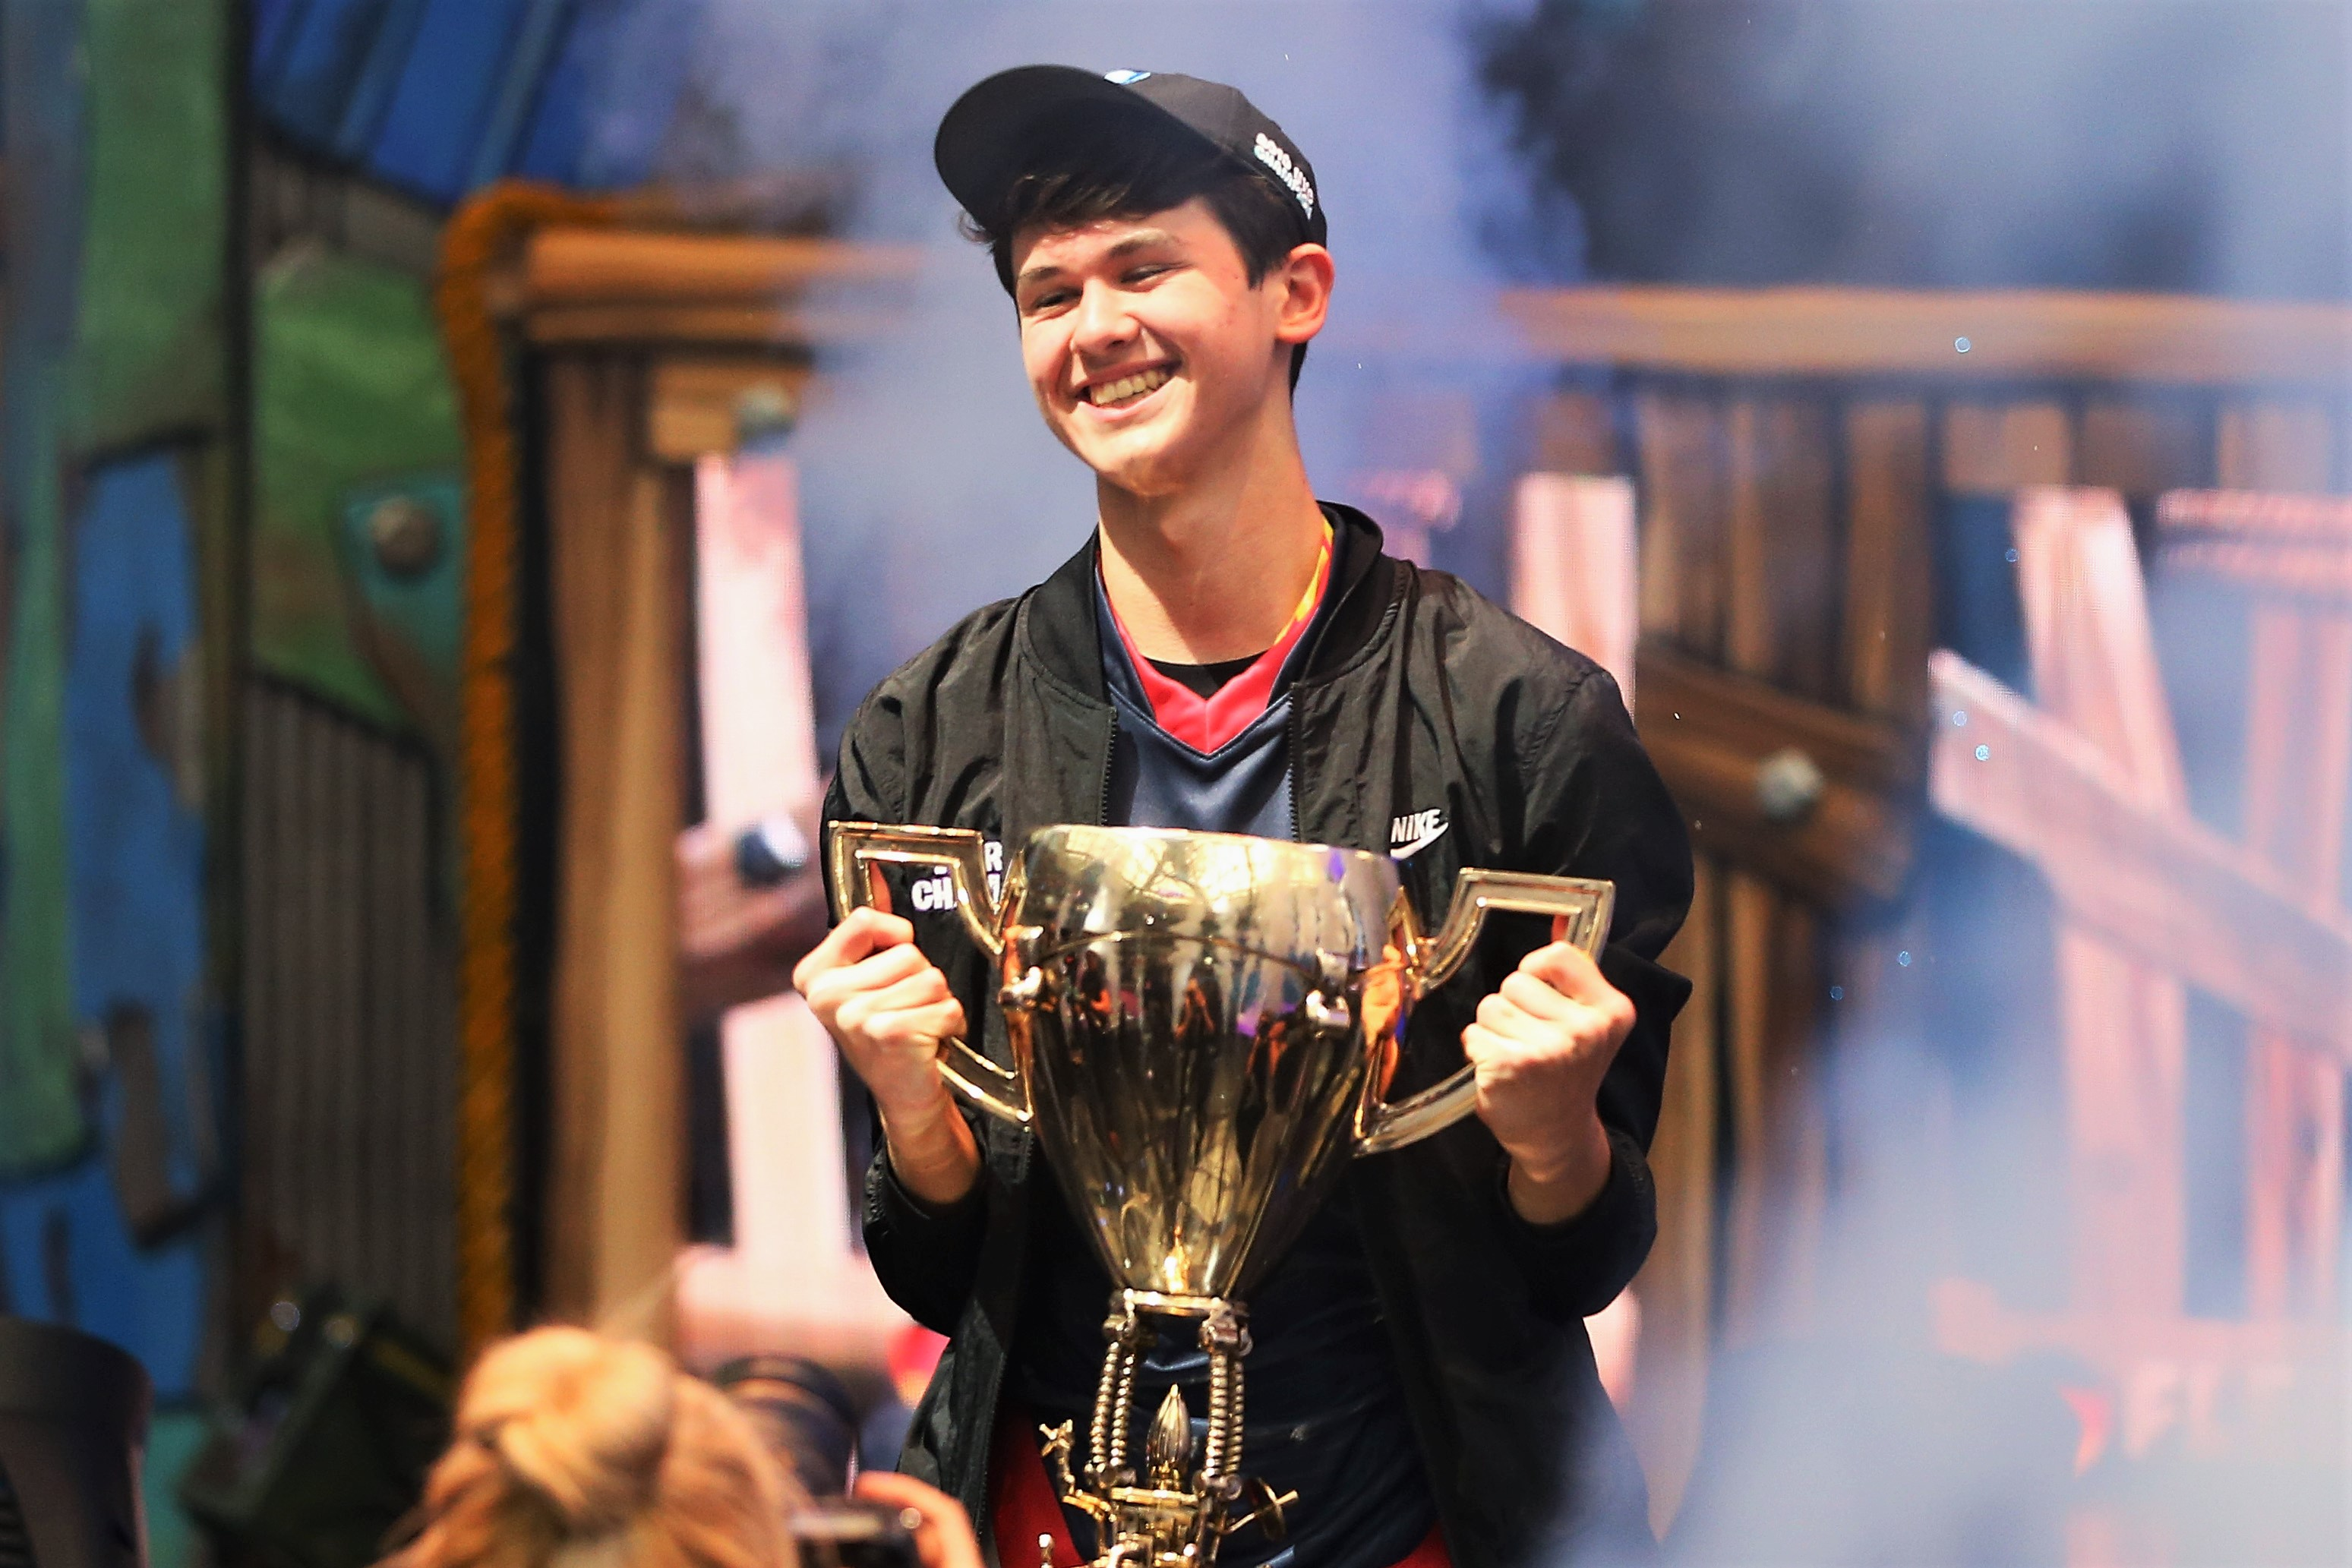 A Pennsylvania Teenager Just Won $3 Million in the First-Ever Fortnite World Cup